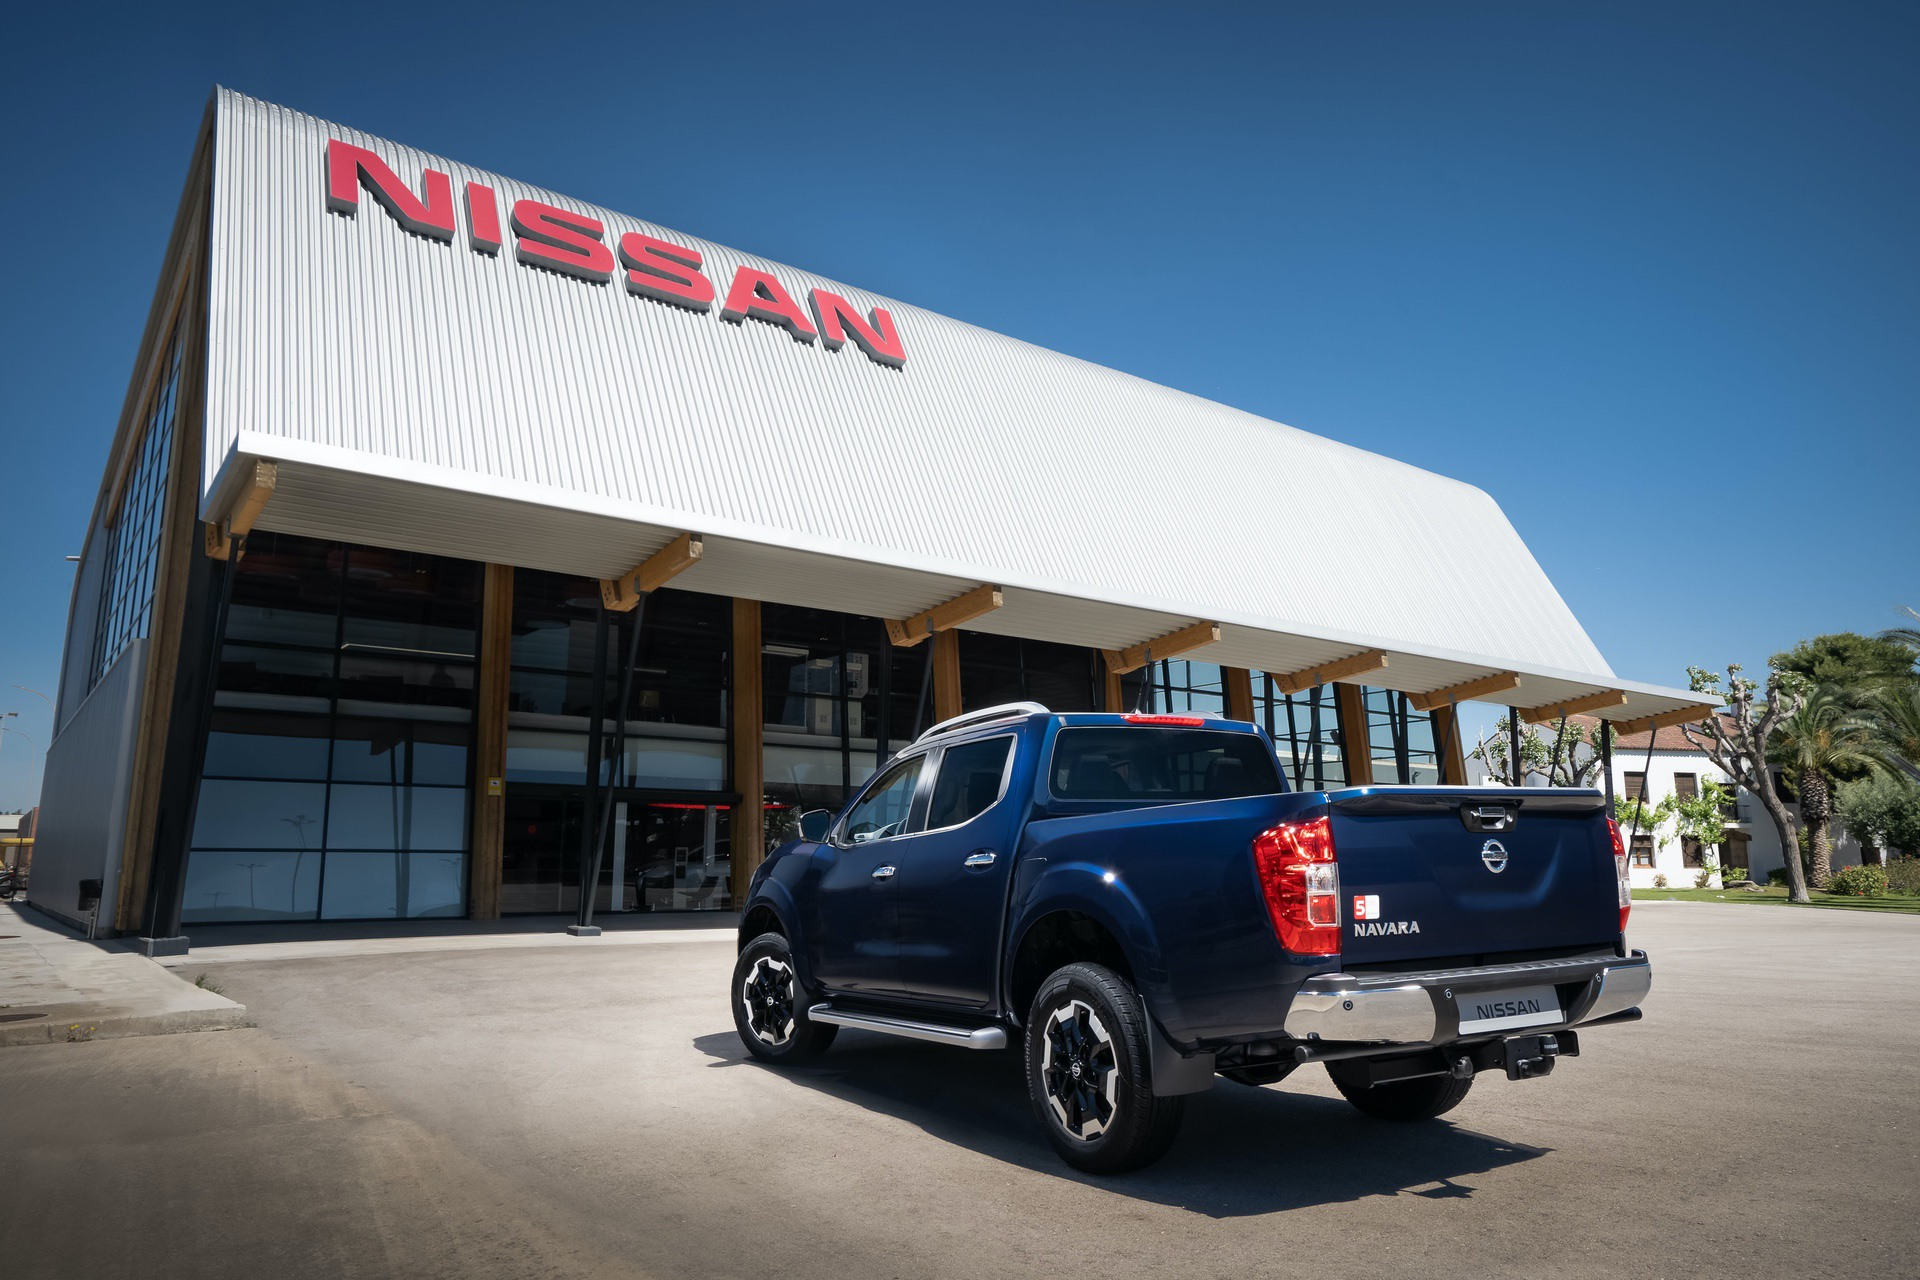 Nissan-Navara-Double-Cab-Blue-Rear